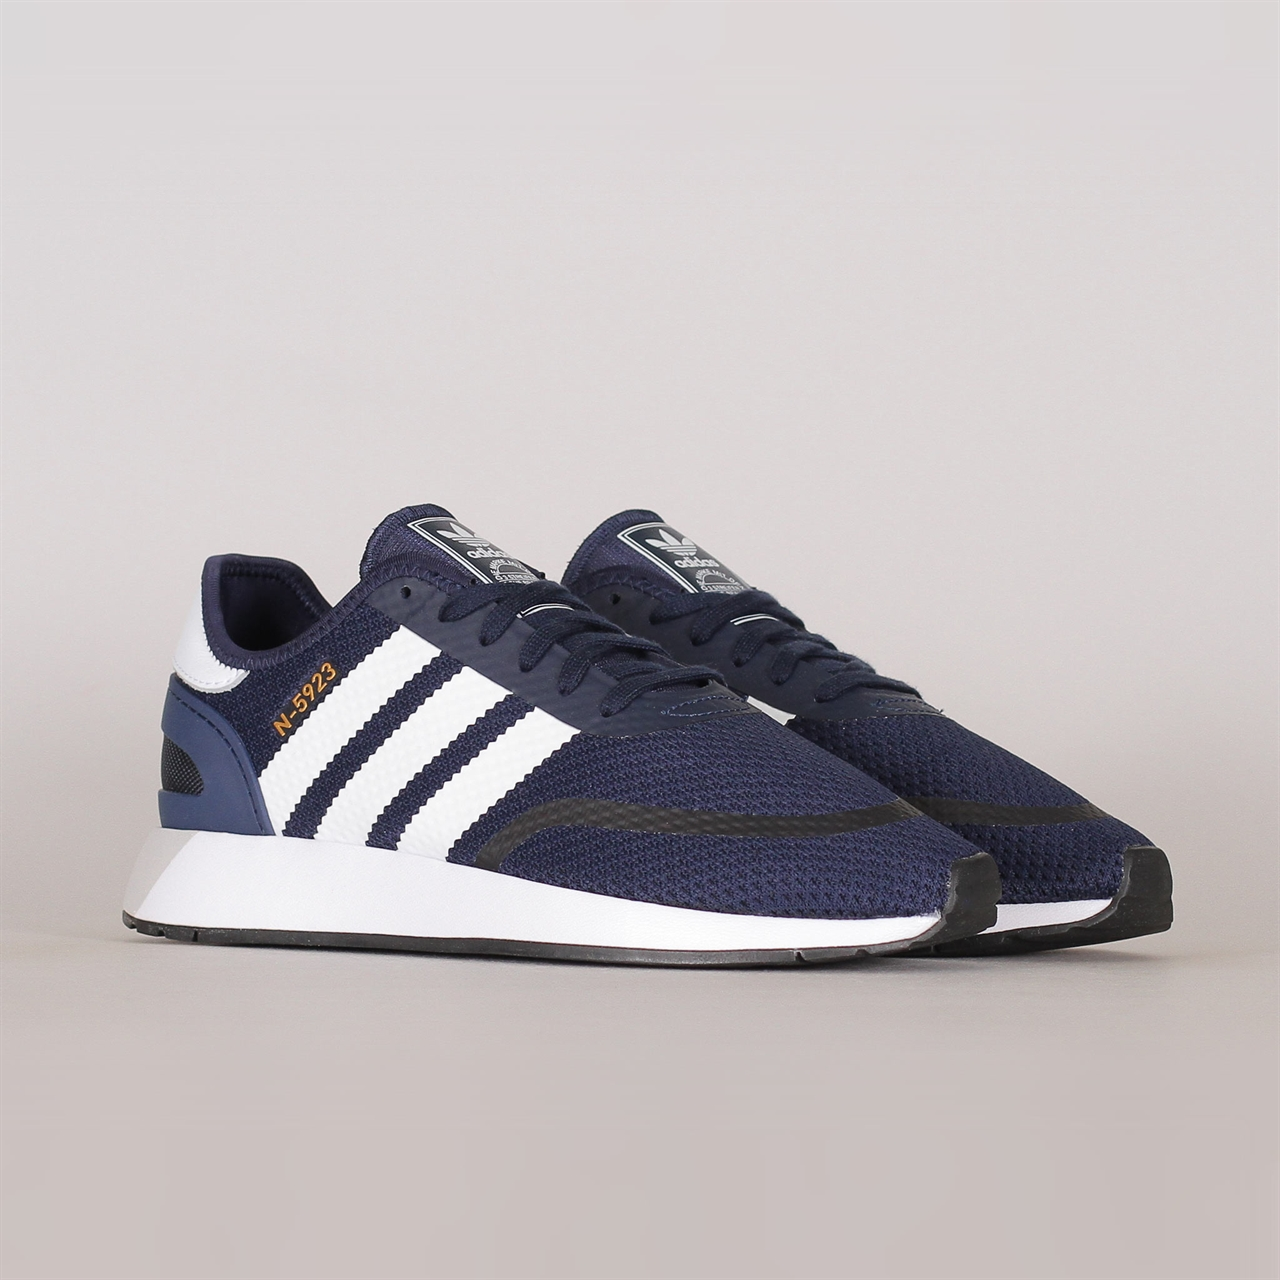 fd64b58b700 Shelta - Adidas Originals N-5923 (DB0961)